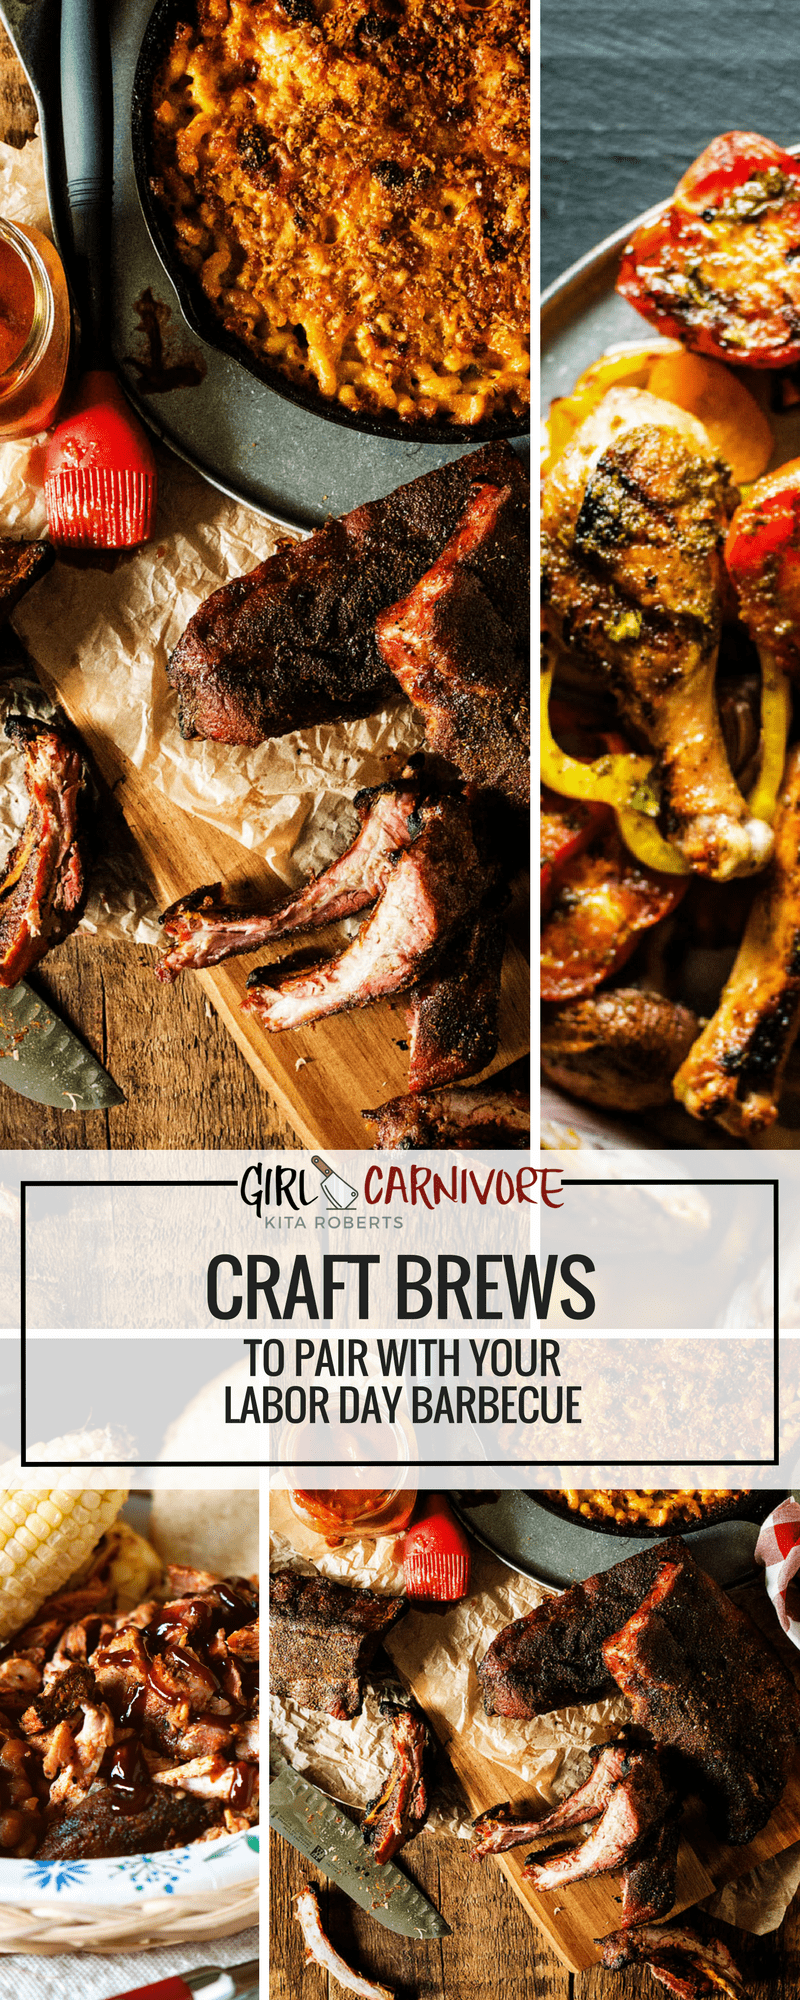 Craft Brews to Pair with Your Labor Day Barbecue